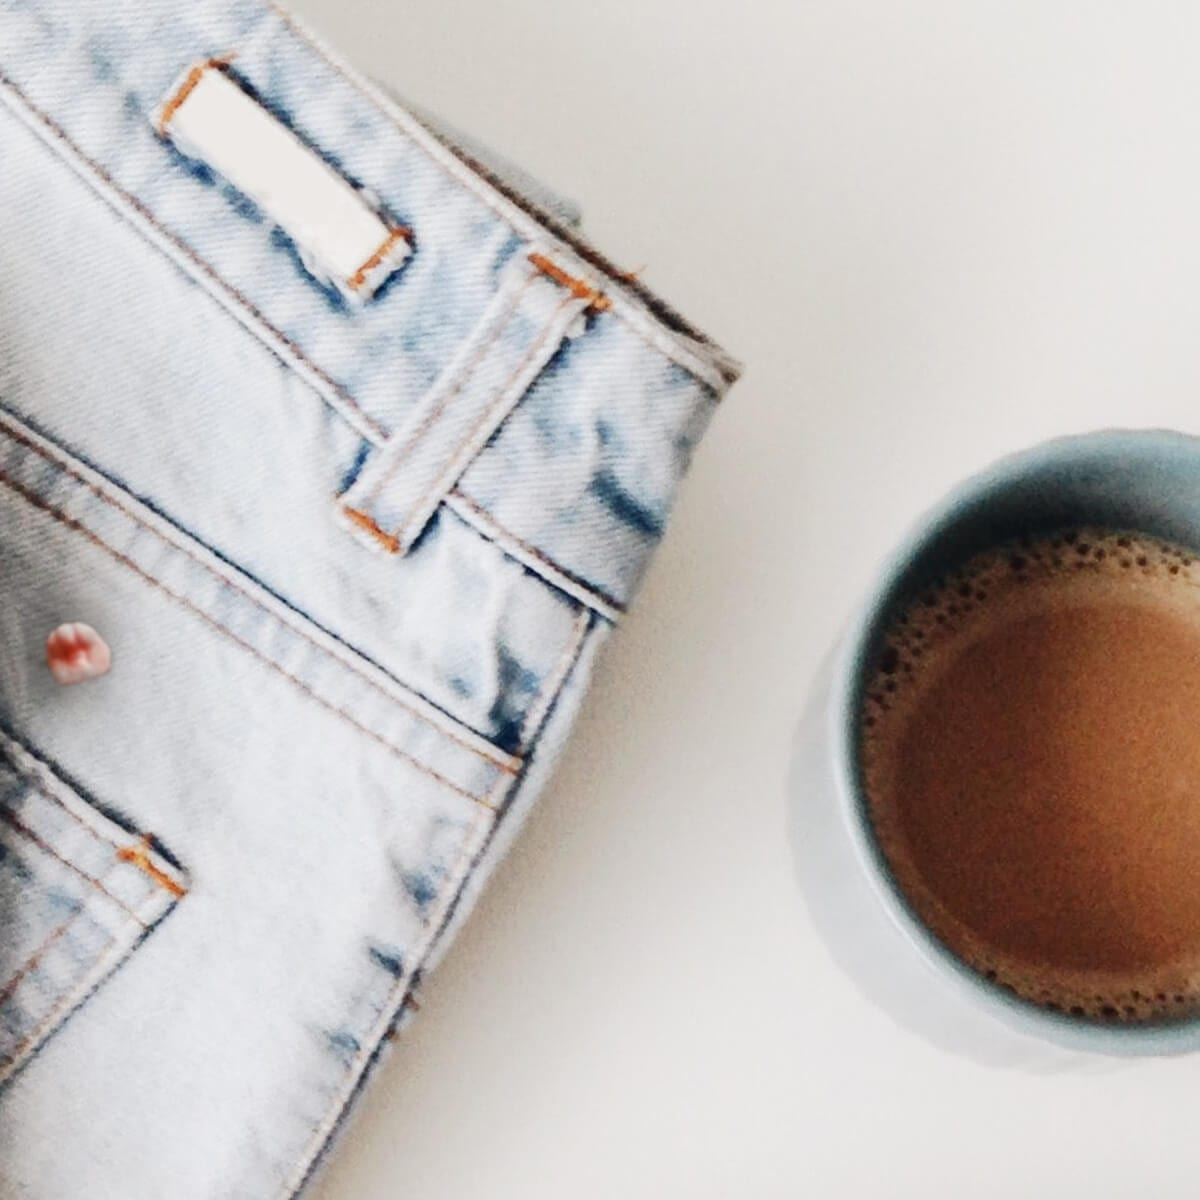 White washed jeans with gum on them, cup of coffee